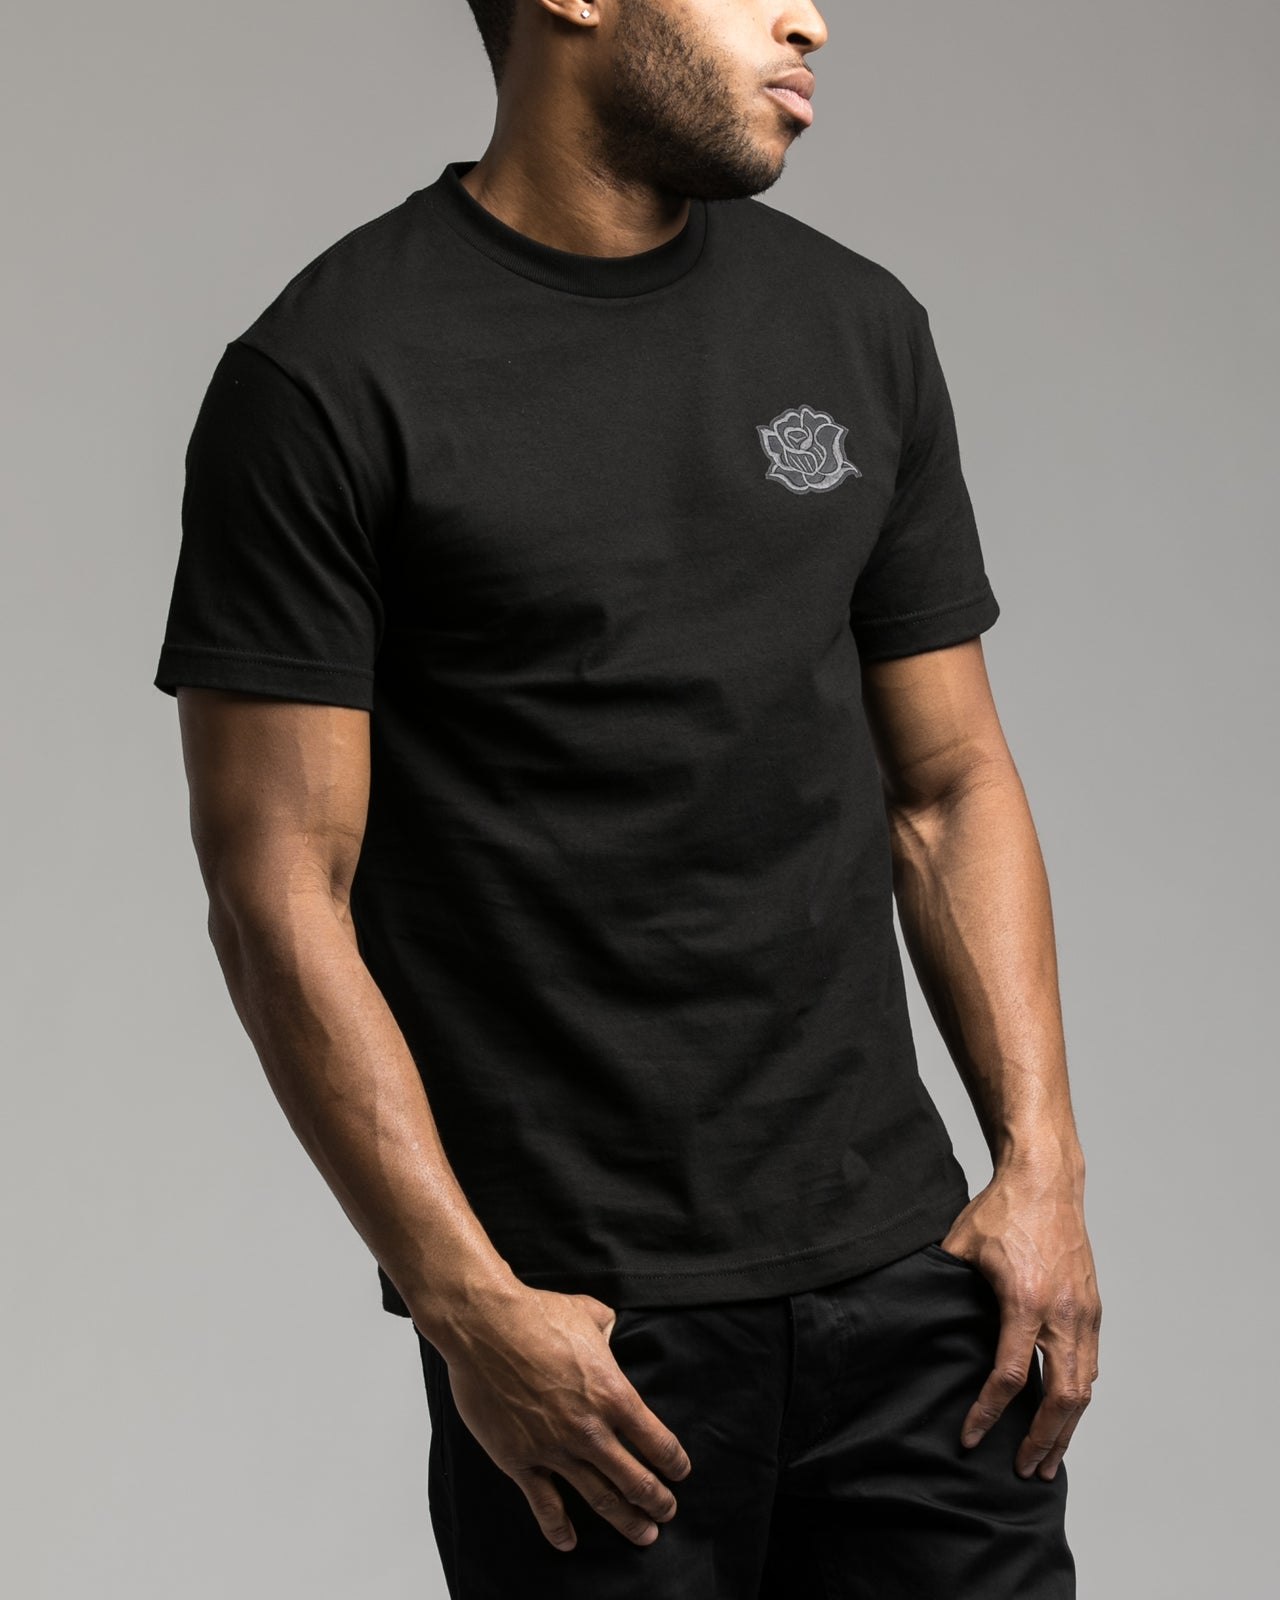 Black Rose Patch Tee - Color: Black | Black